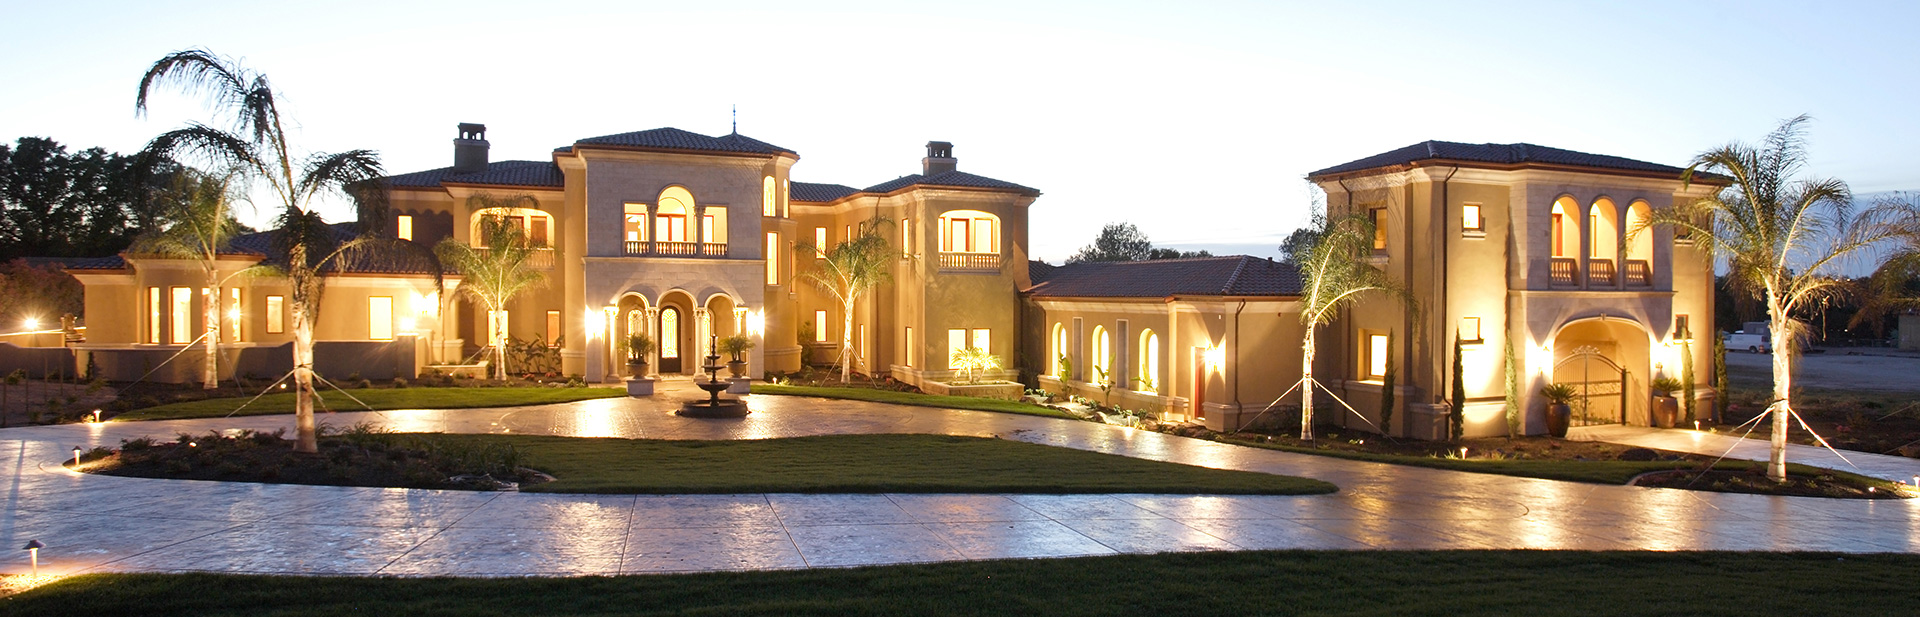 South florida luxury real estate boca raton luxury homes for Pictures of luxury homes